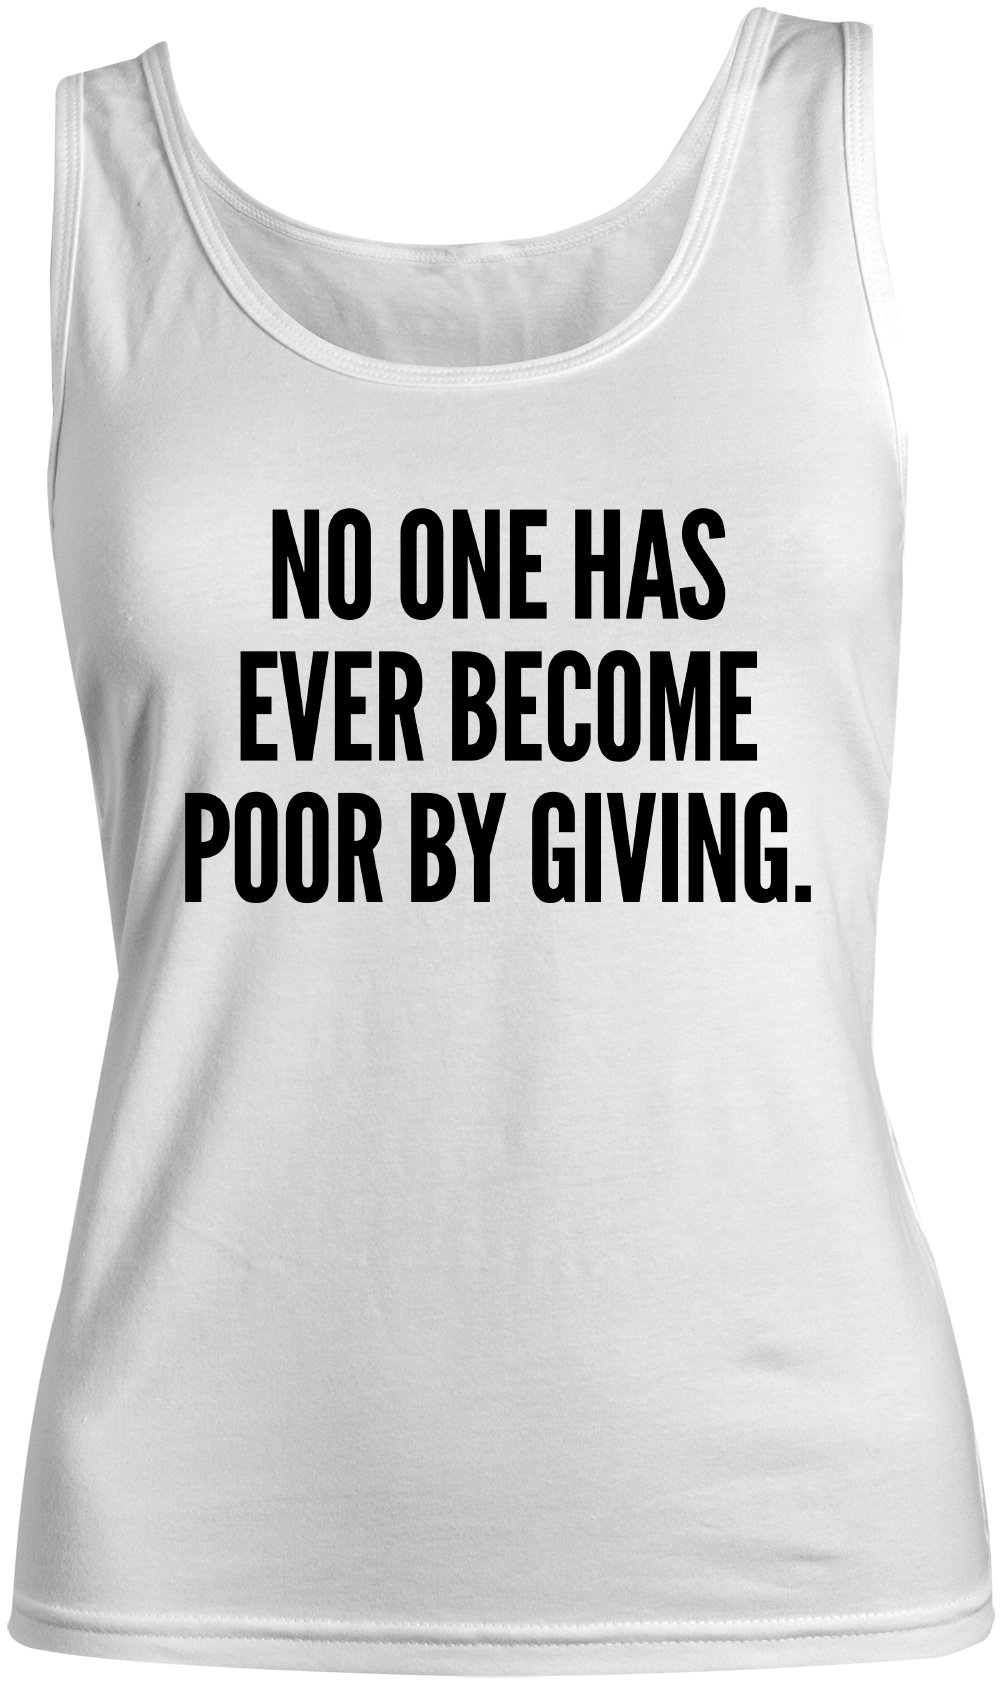 No One Has Ever Become Poor By Giving Motivational Tank Top Sleeveless Shirt 7526